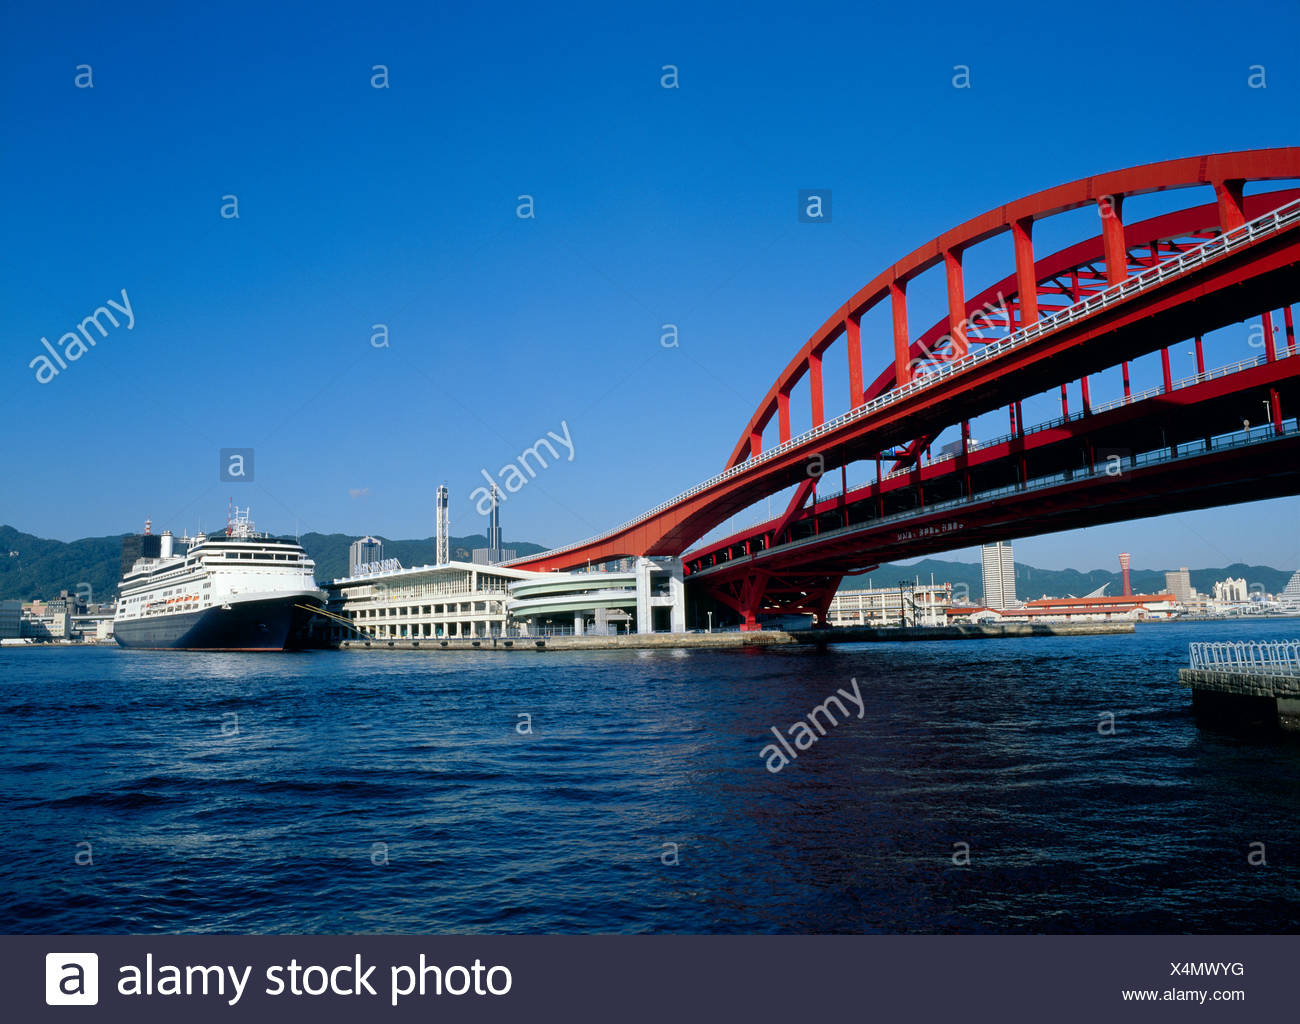 Kobe Bridge, Kobe, Hyogo, Japan - Stock Image